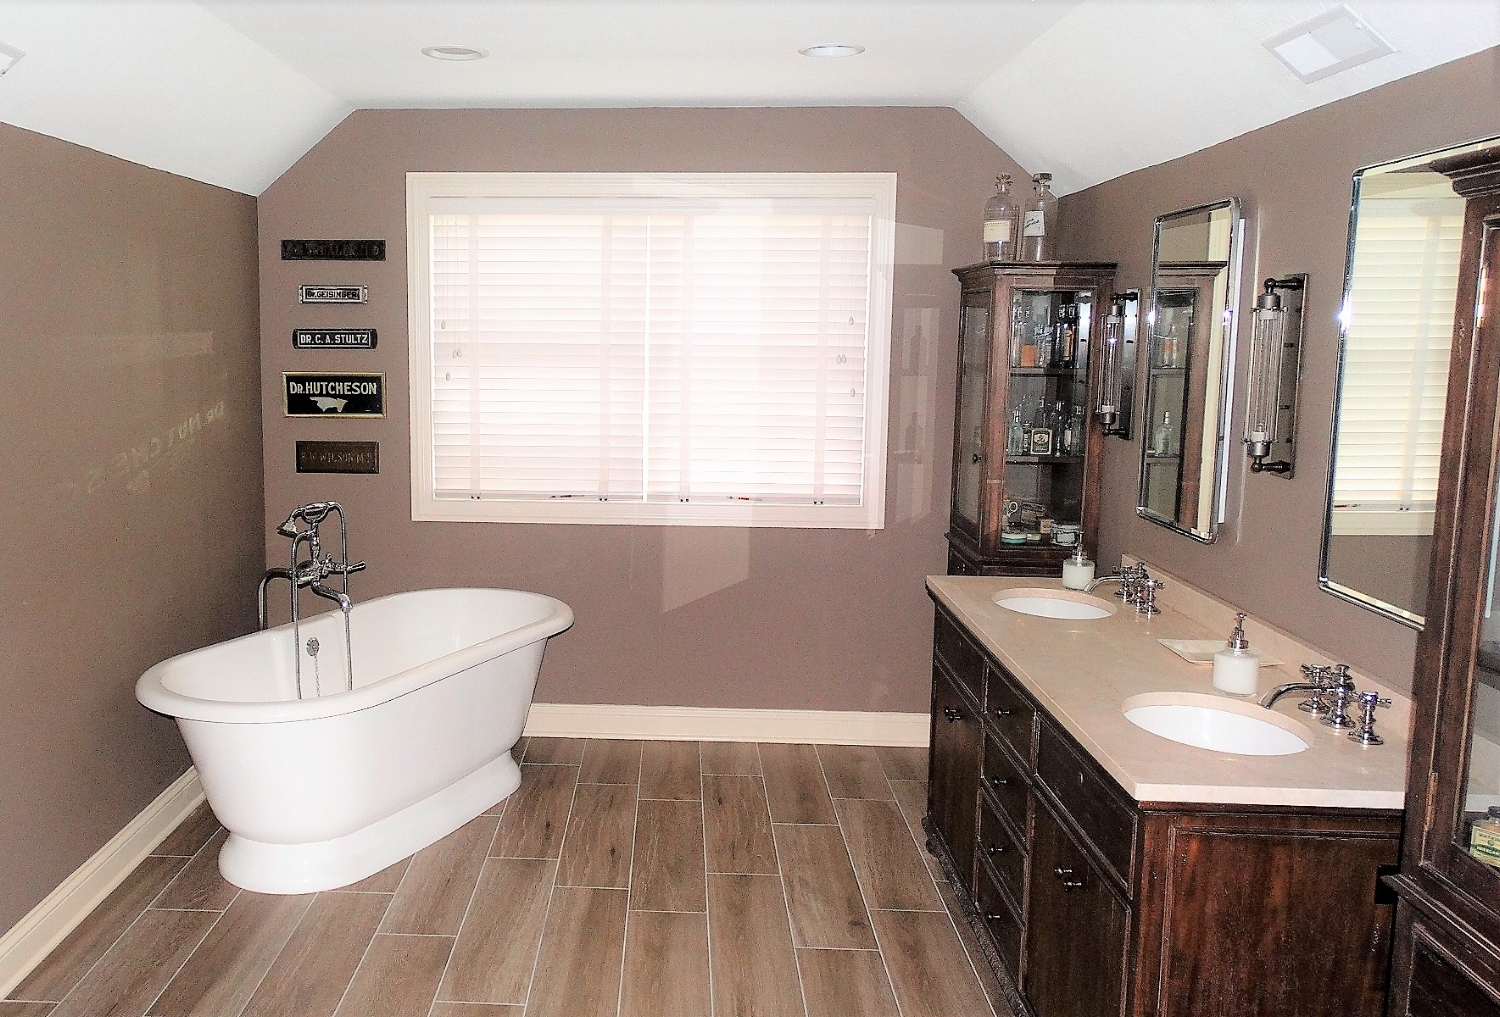 bathroom-remodel-plank-tile-stand-alone-tub-vanity-white-double.jpg